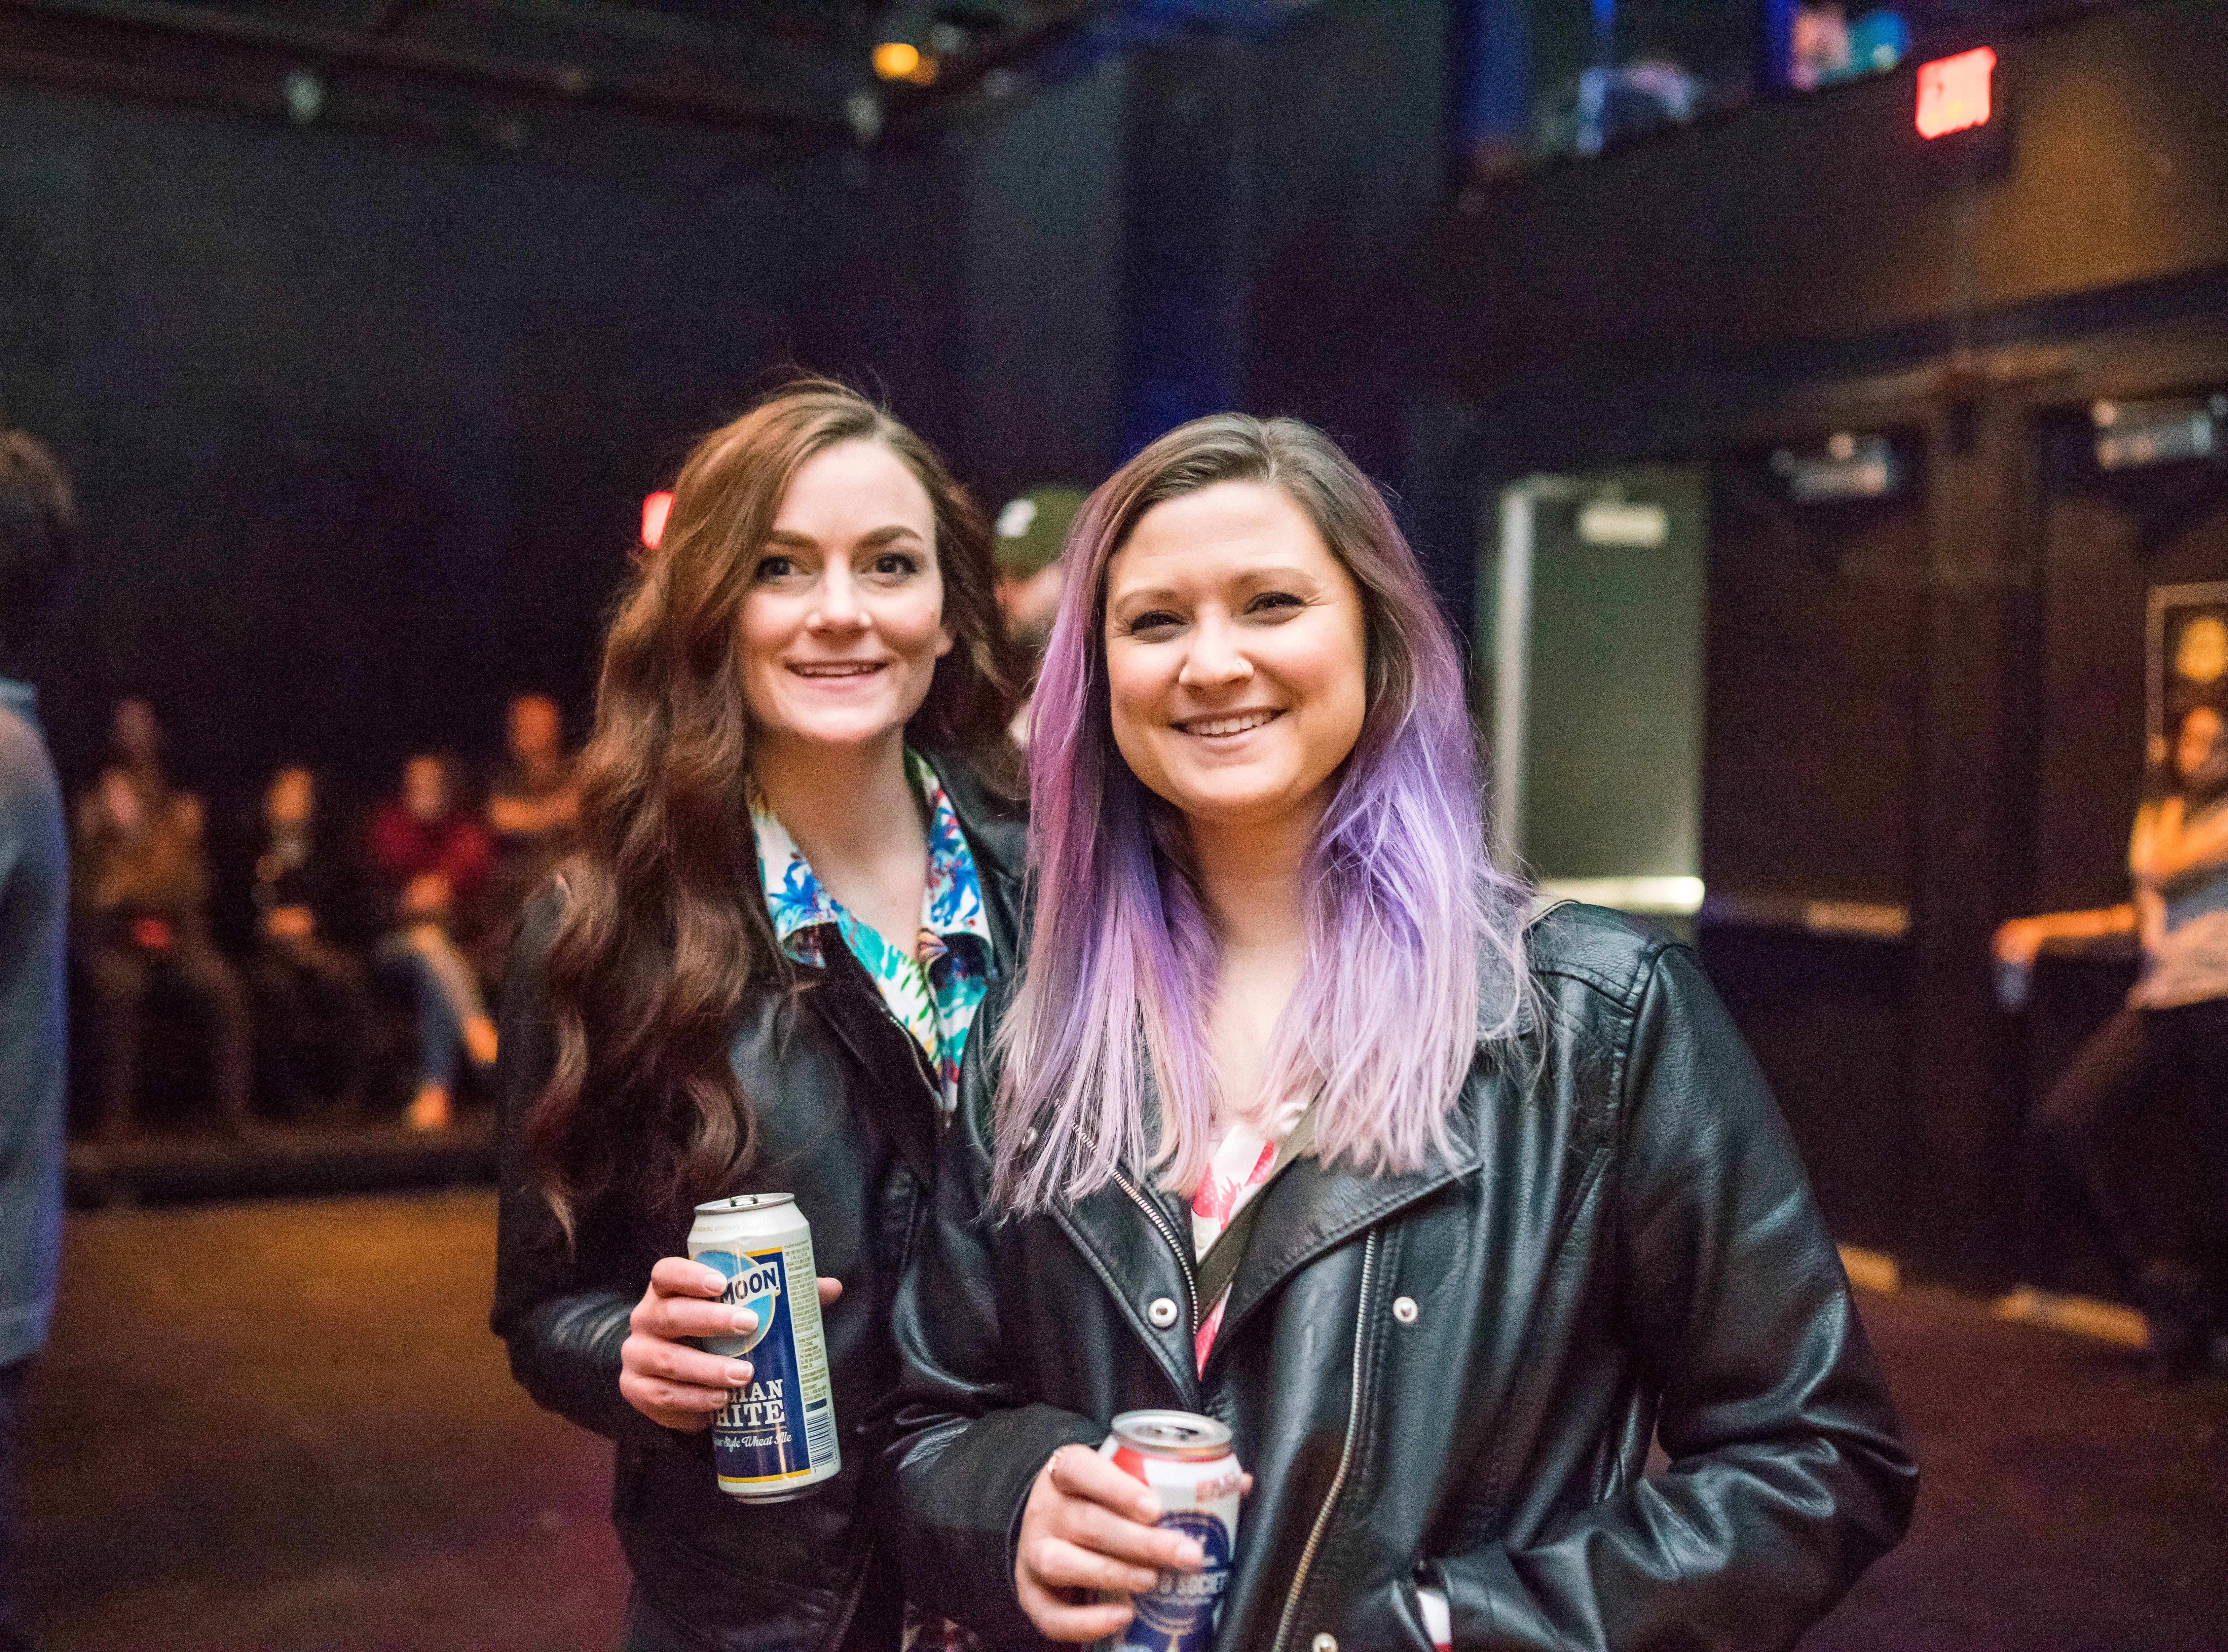 Mallory Shafer, 27, and Ceslie Ozbun, 28, both of Des Moines, having a fun time, Friday, Dec. 7, at Heatwave, hosted by the Des Moines Social Club.